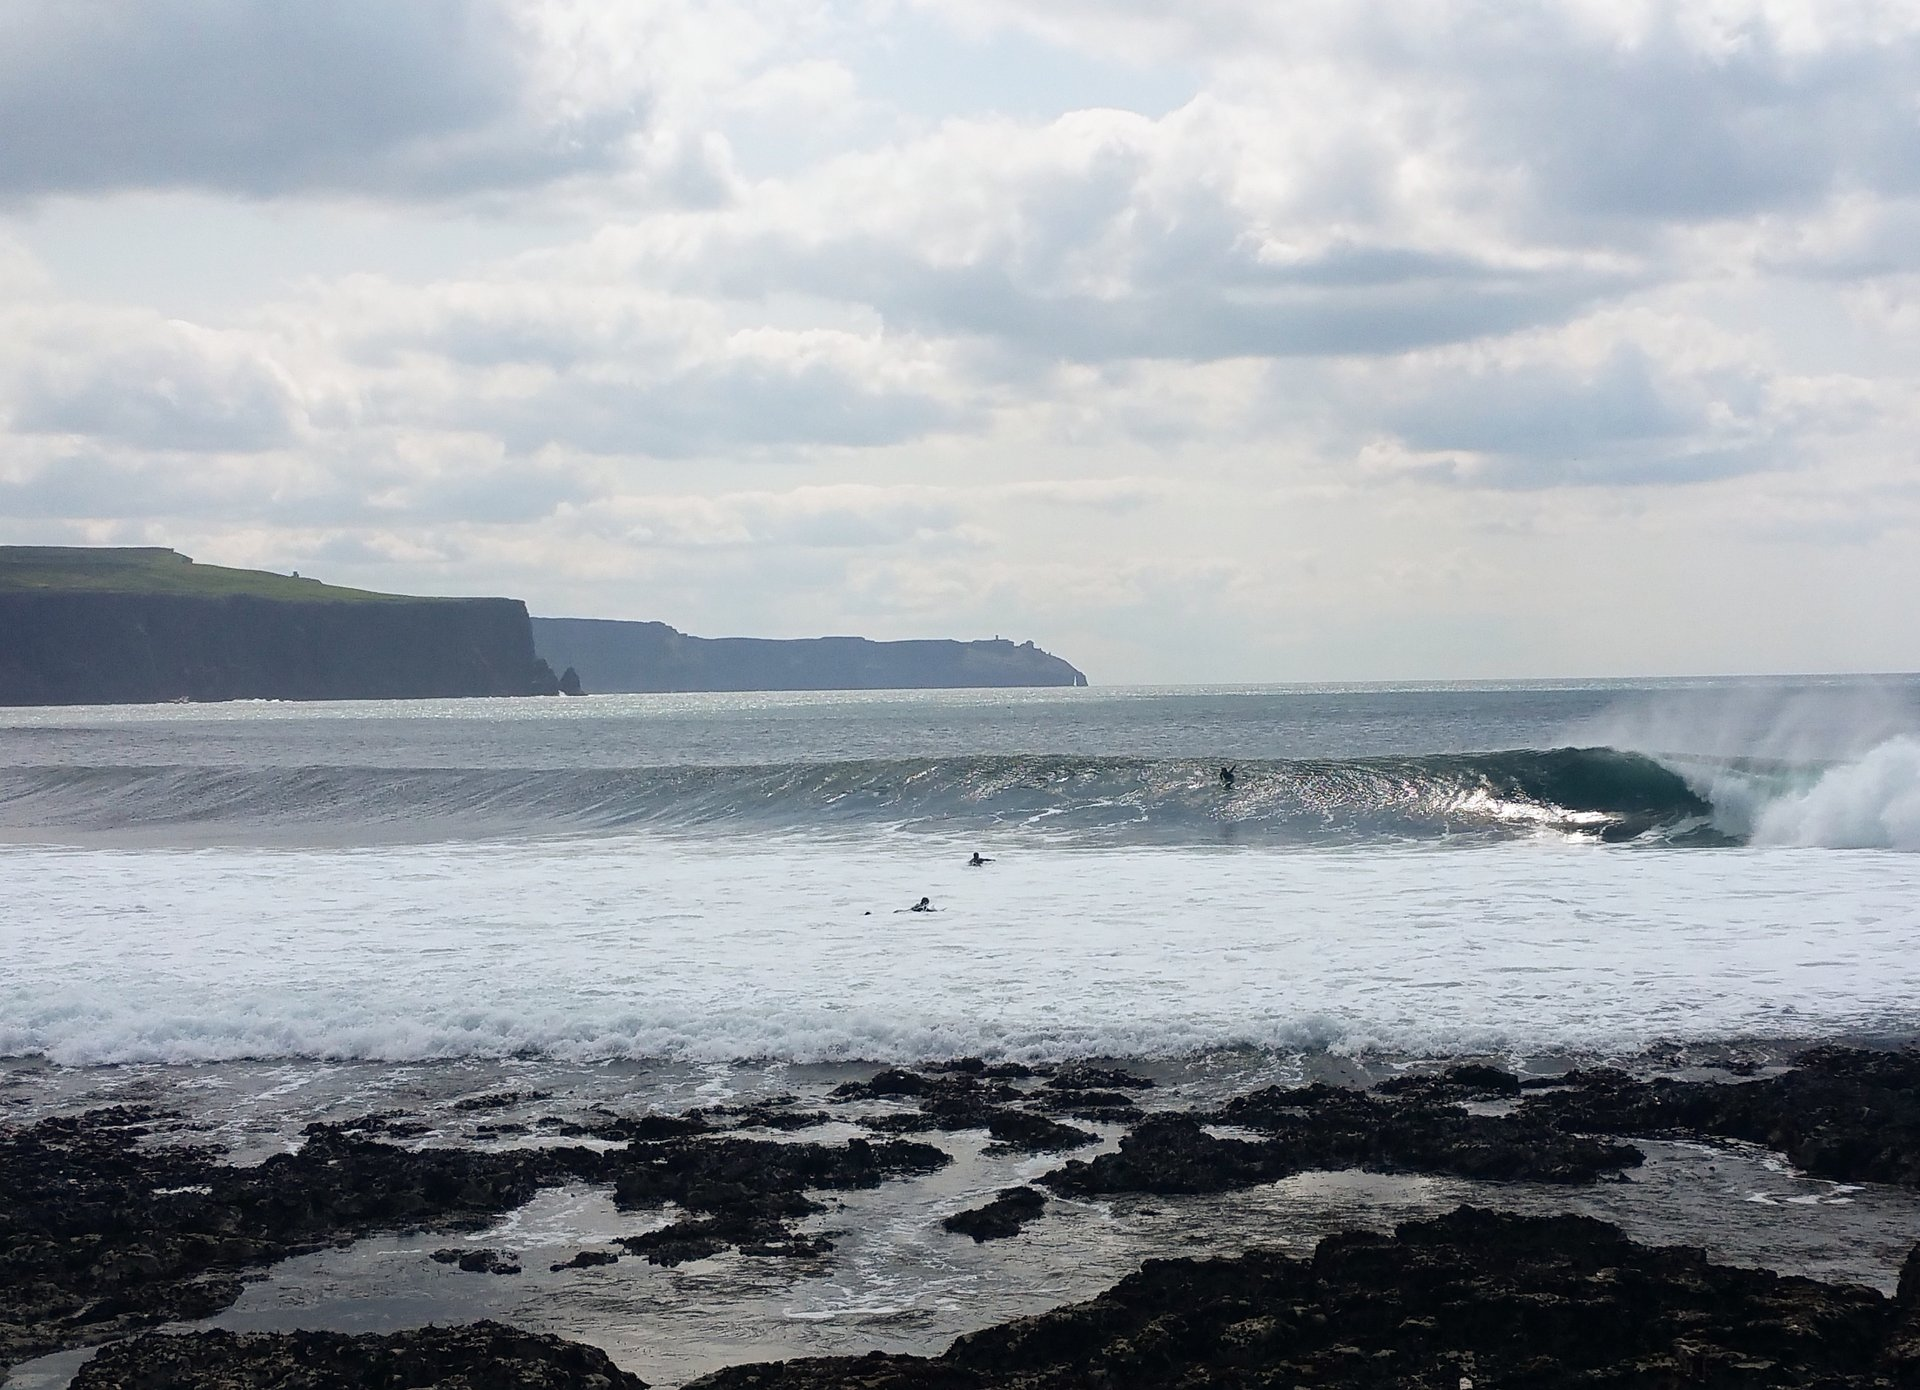 Jimmy Slade's photo of Lahinch - Beach